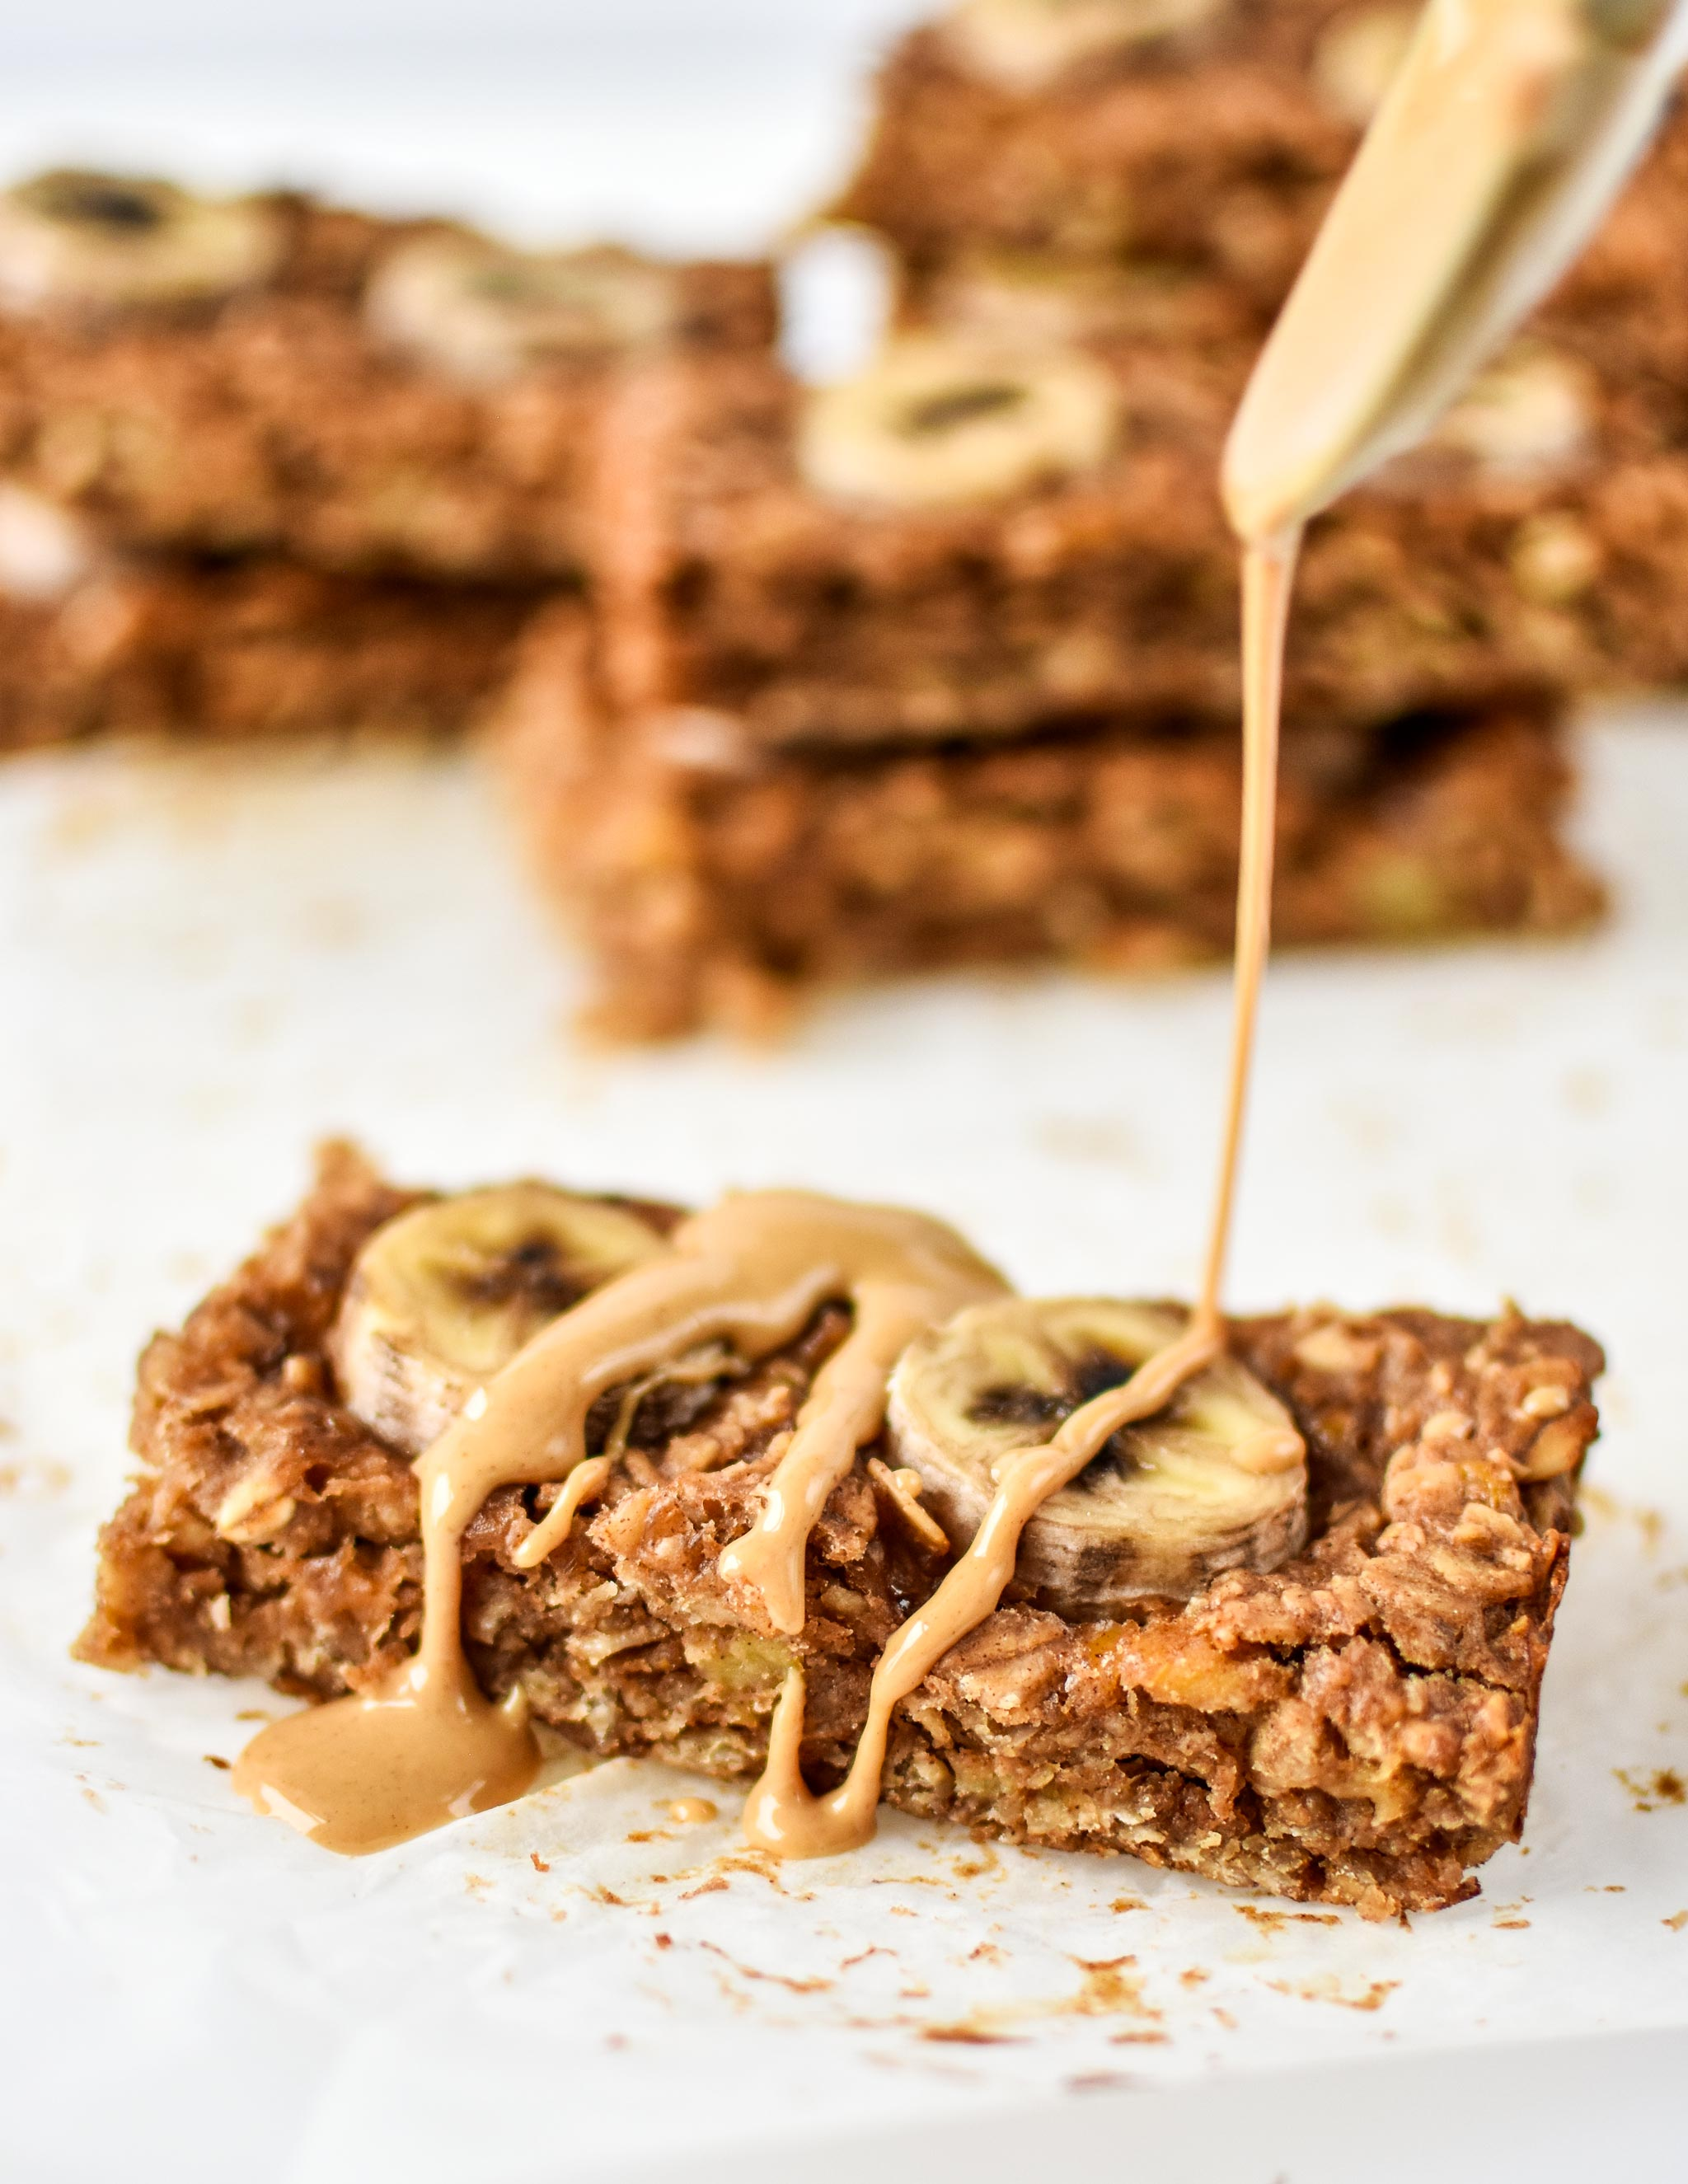 PB Banana Oatmeal Breakfast Bars drizzled with peanut butter